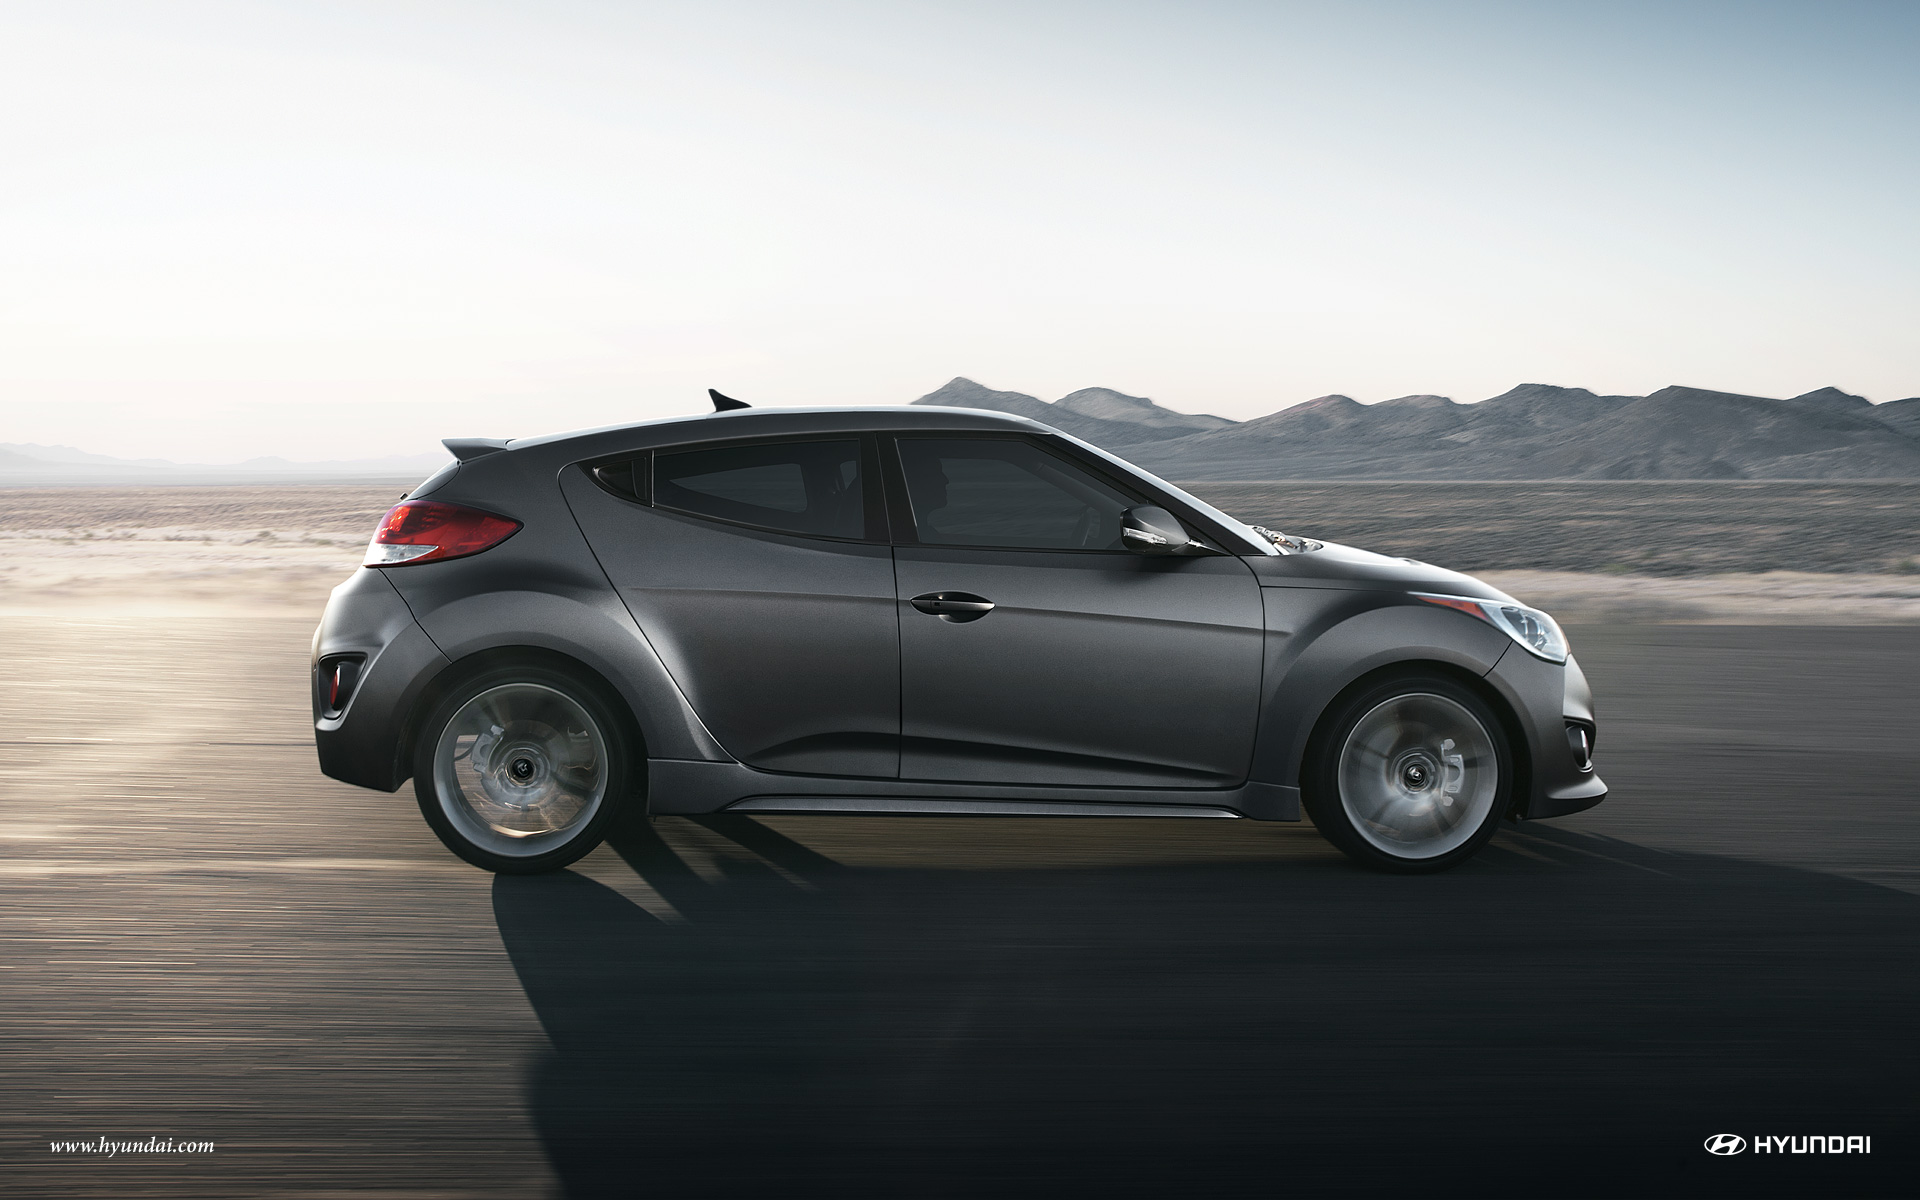 2013 Hyundai Veloster TURBO! | Butler Auto Group's Blog